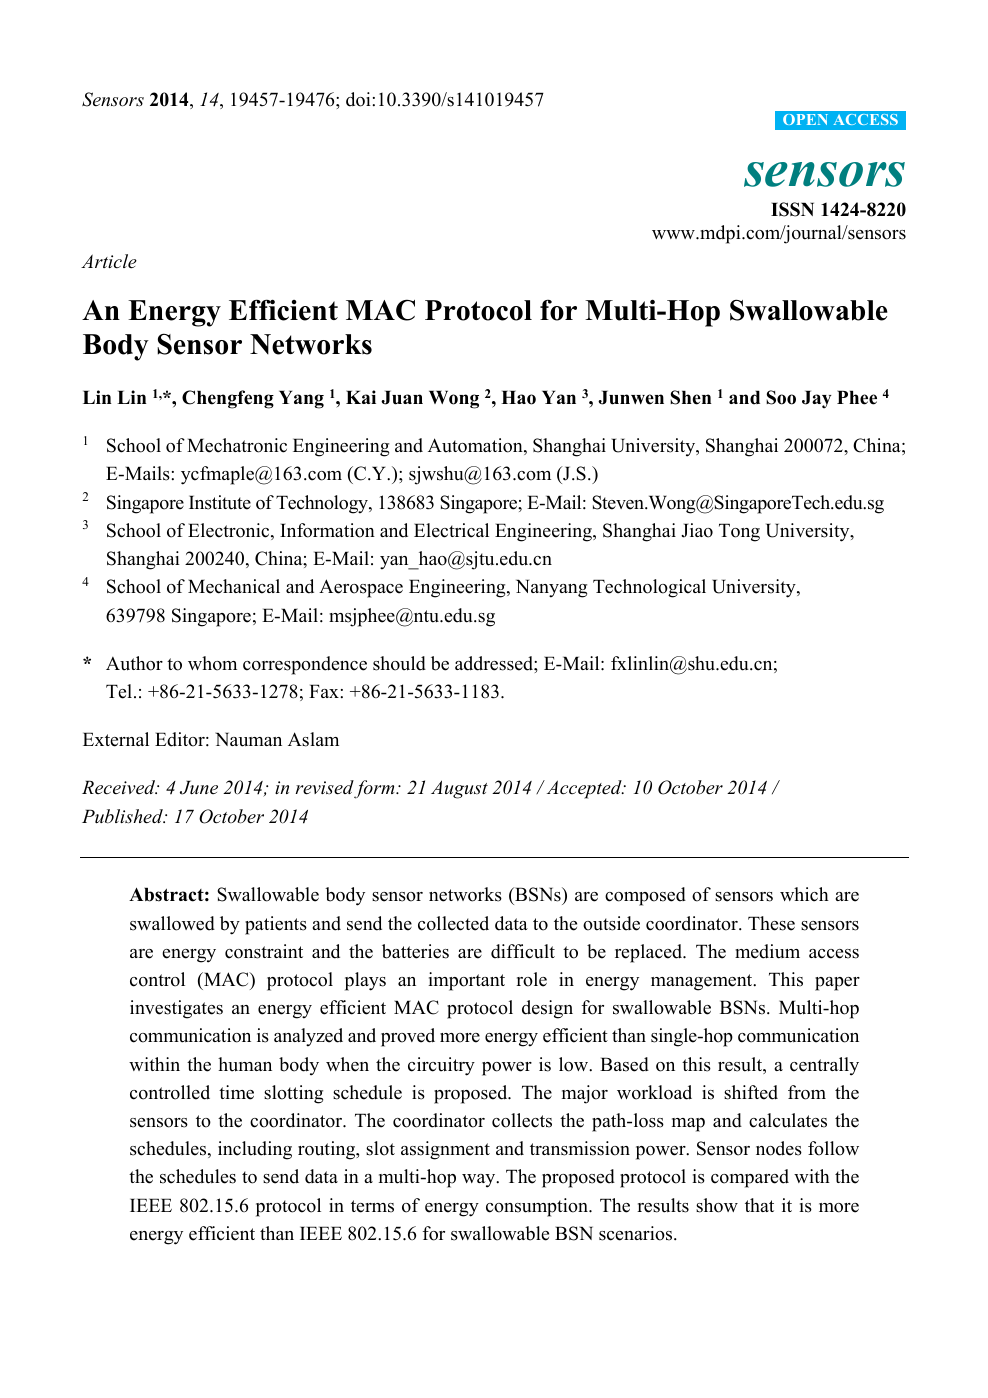 An Energy Efficient MAC Protocol for Multi-Hop Swallowable